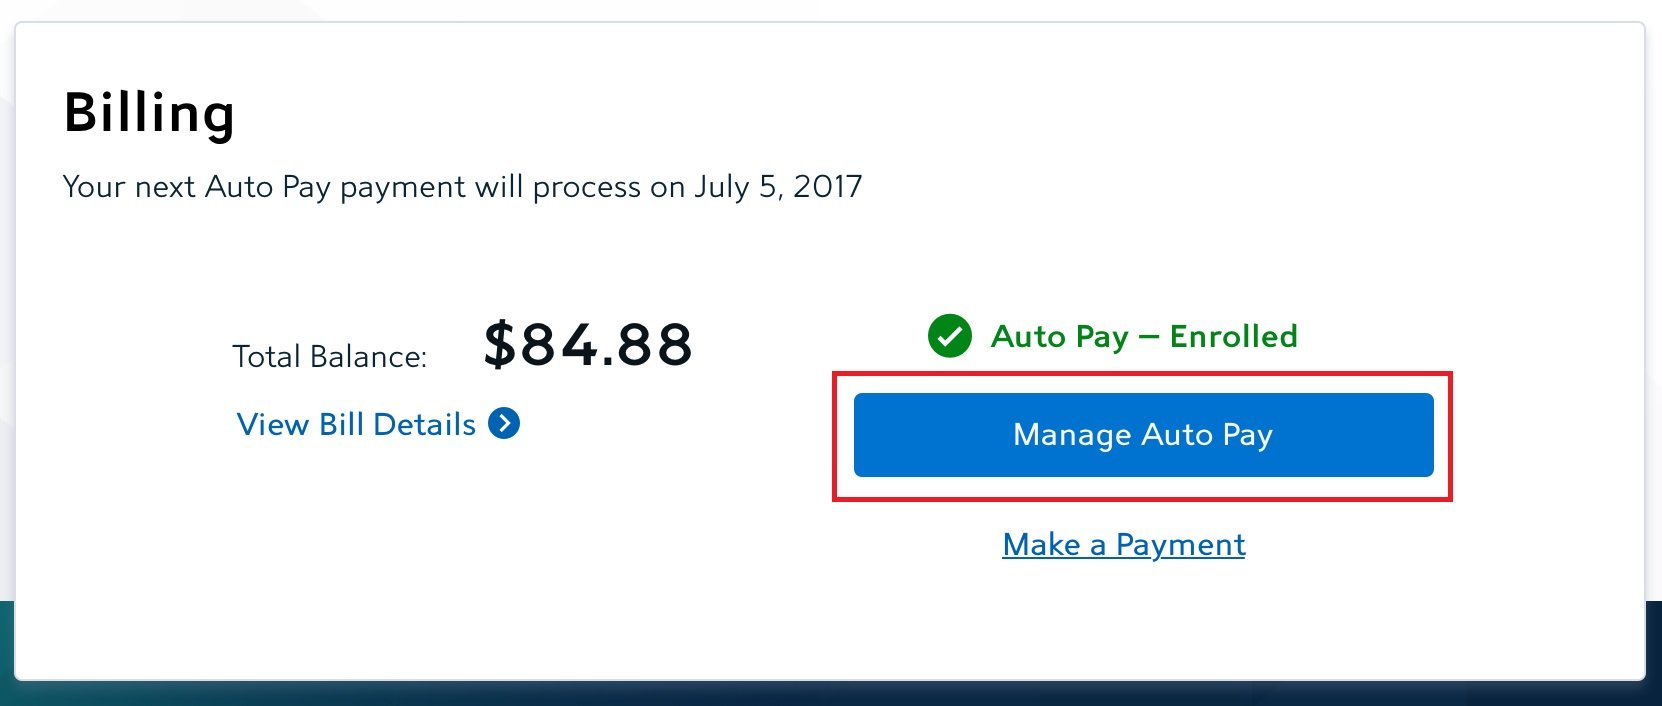 manage auto pay button on account summary page under billing section